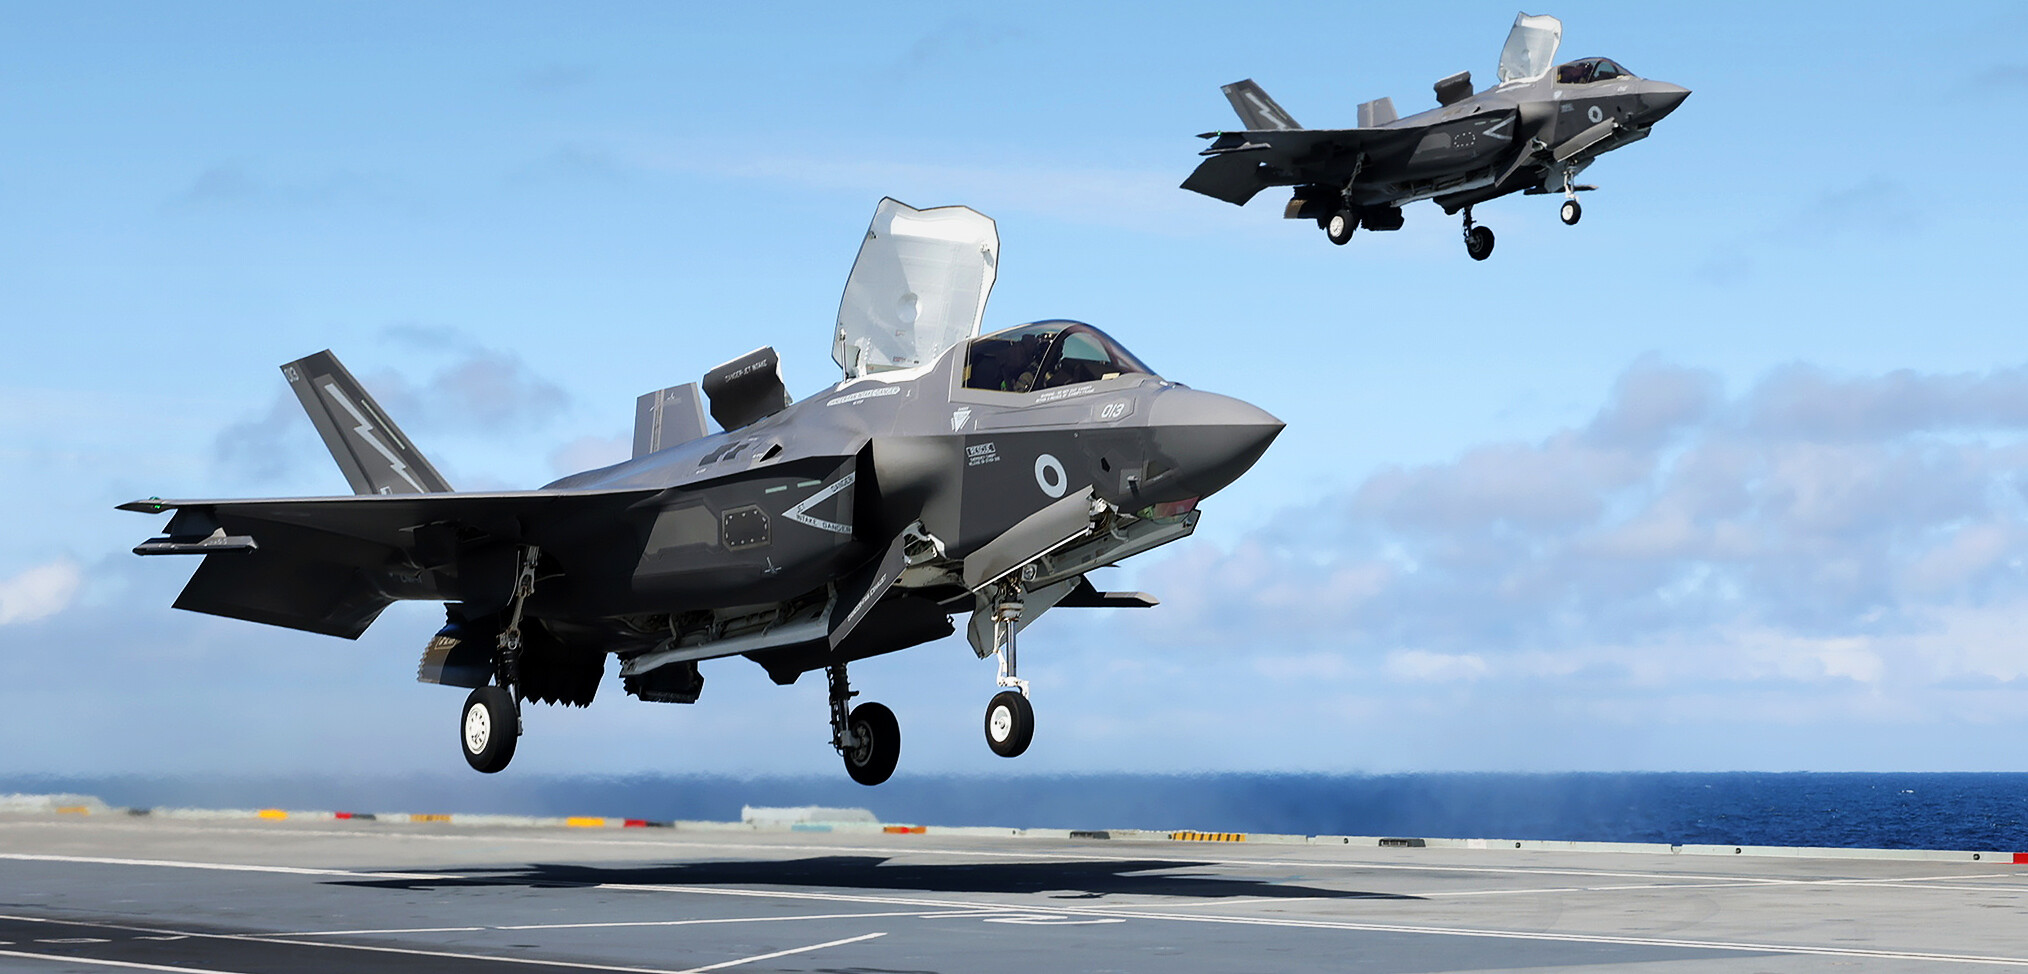 First combat missions flown from HMS Queen Elizabeth